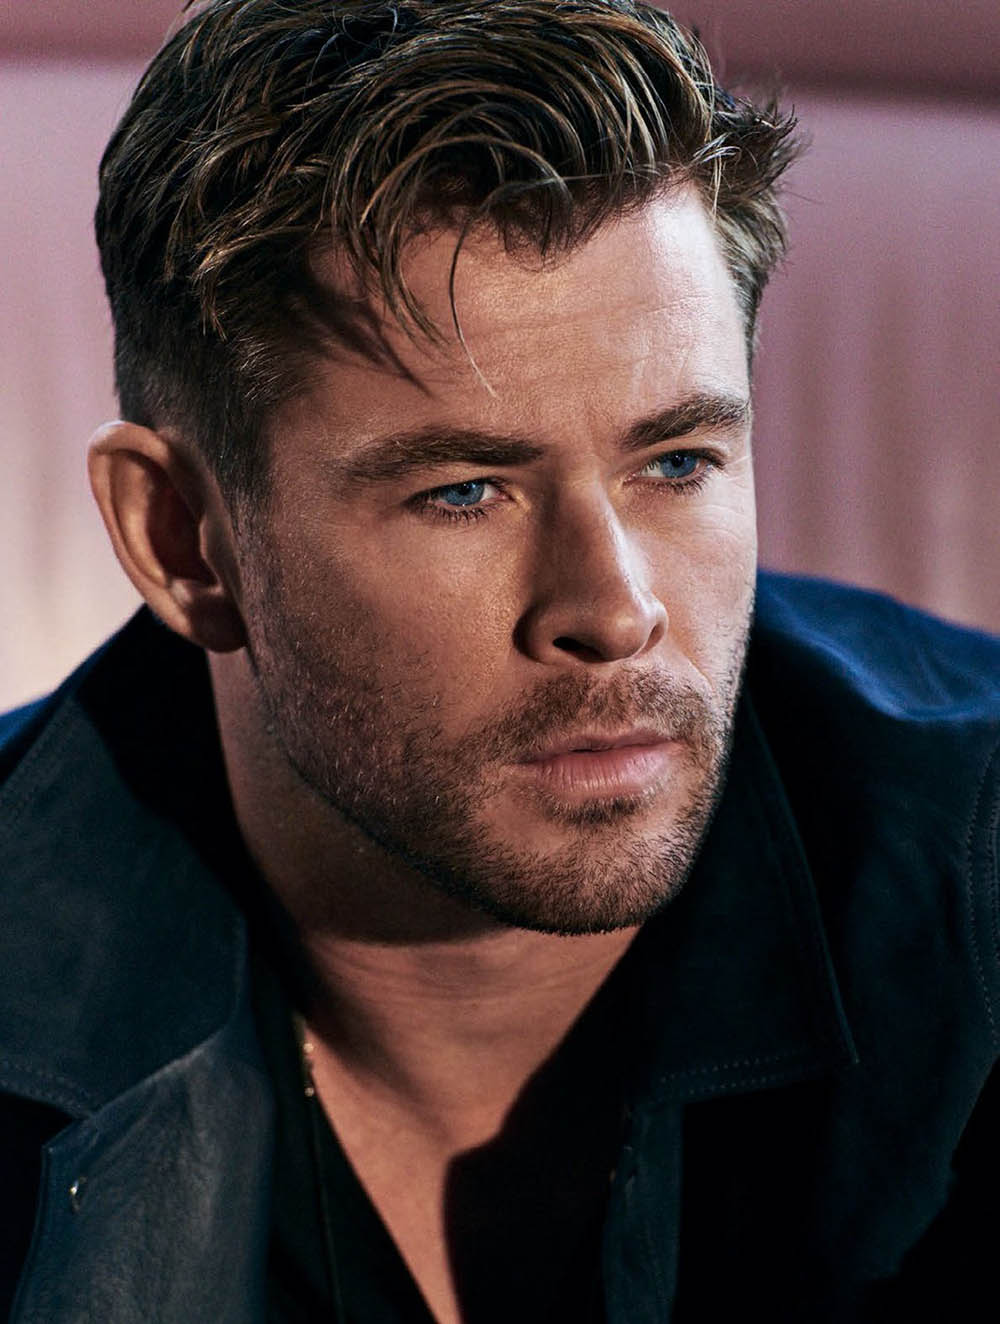 Chris Hemsworth covers GQ Spain June 2019 by Matthew Brookes